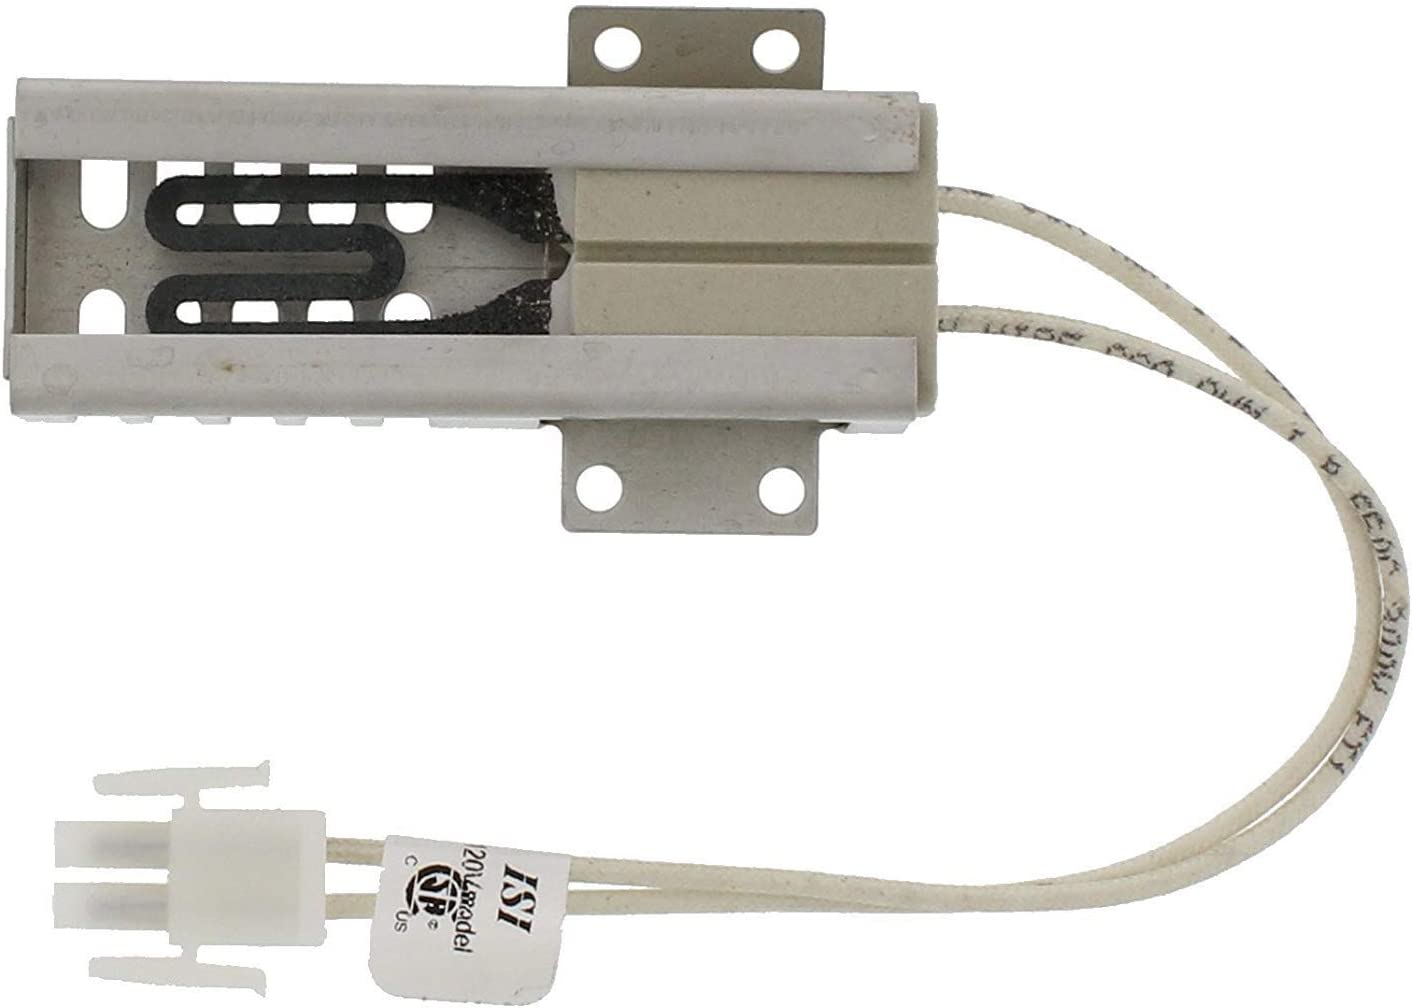 Edgewater Parts WB13K0021 Oven Igniter Compatible With GE Oven